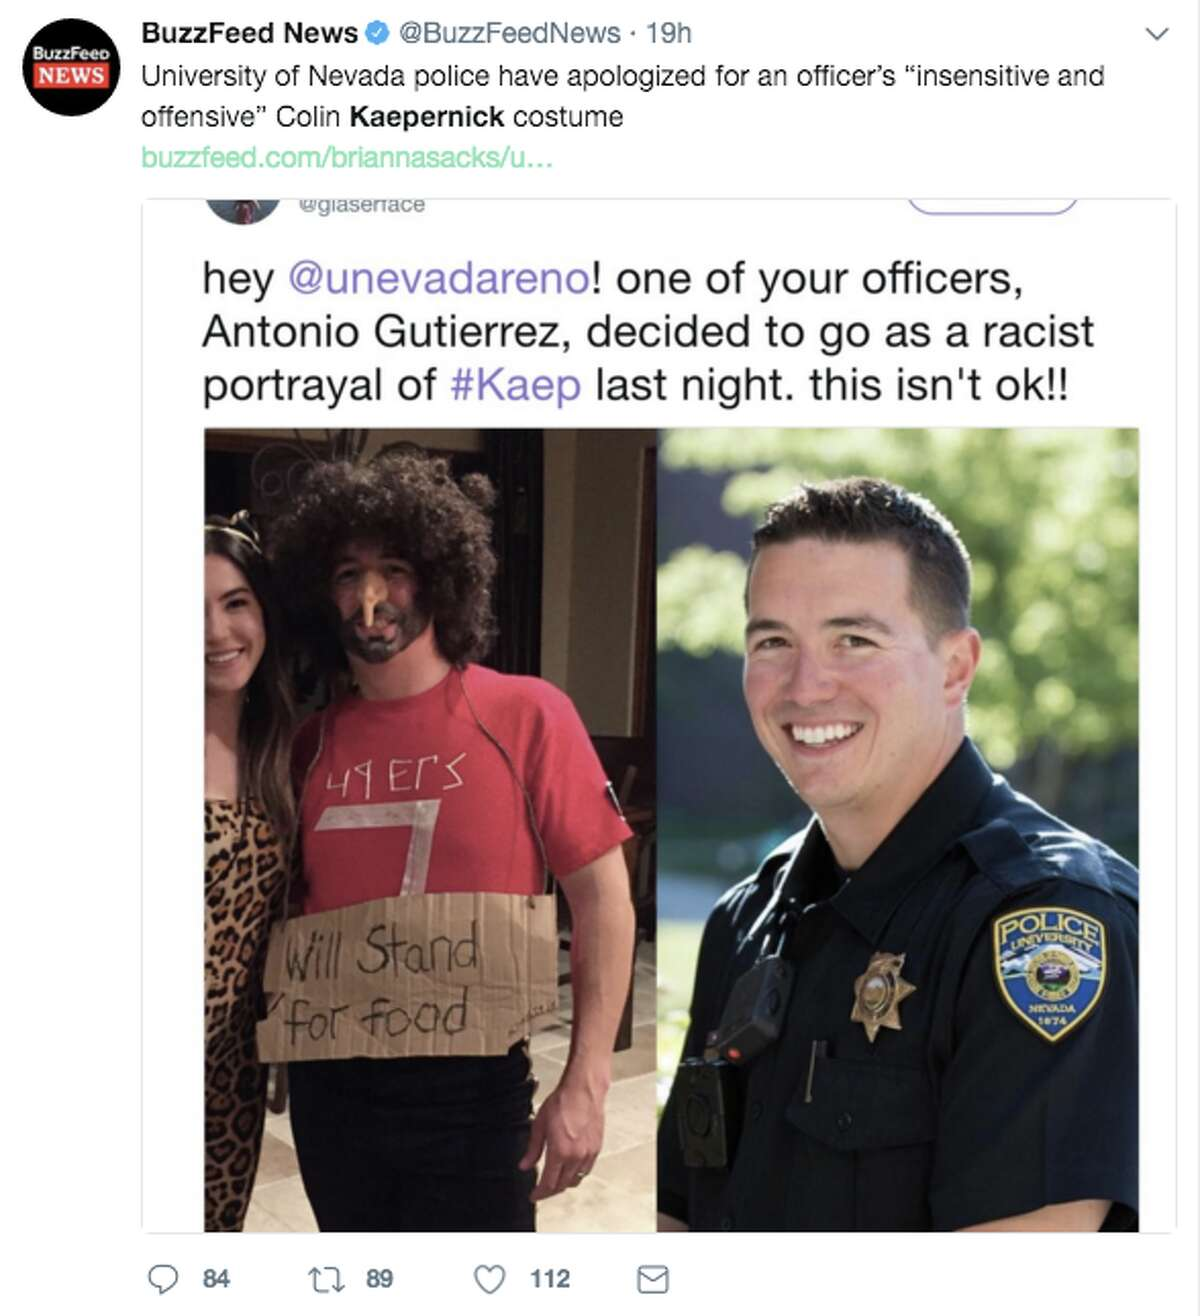 People dressed as Colin Kaepernick for Halloween, and some faced controversy for their costumes.